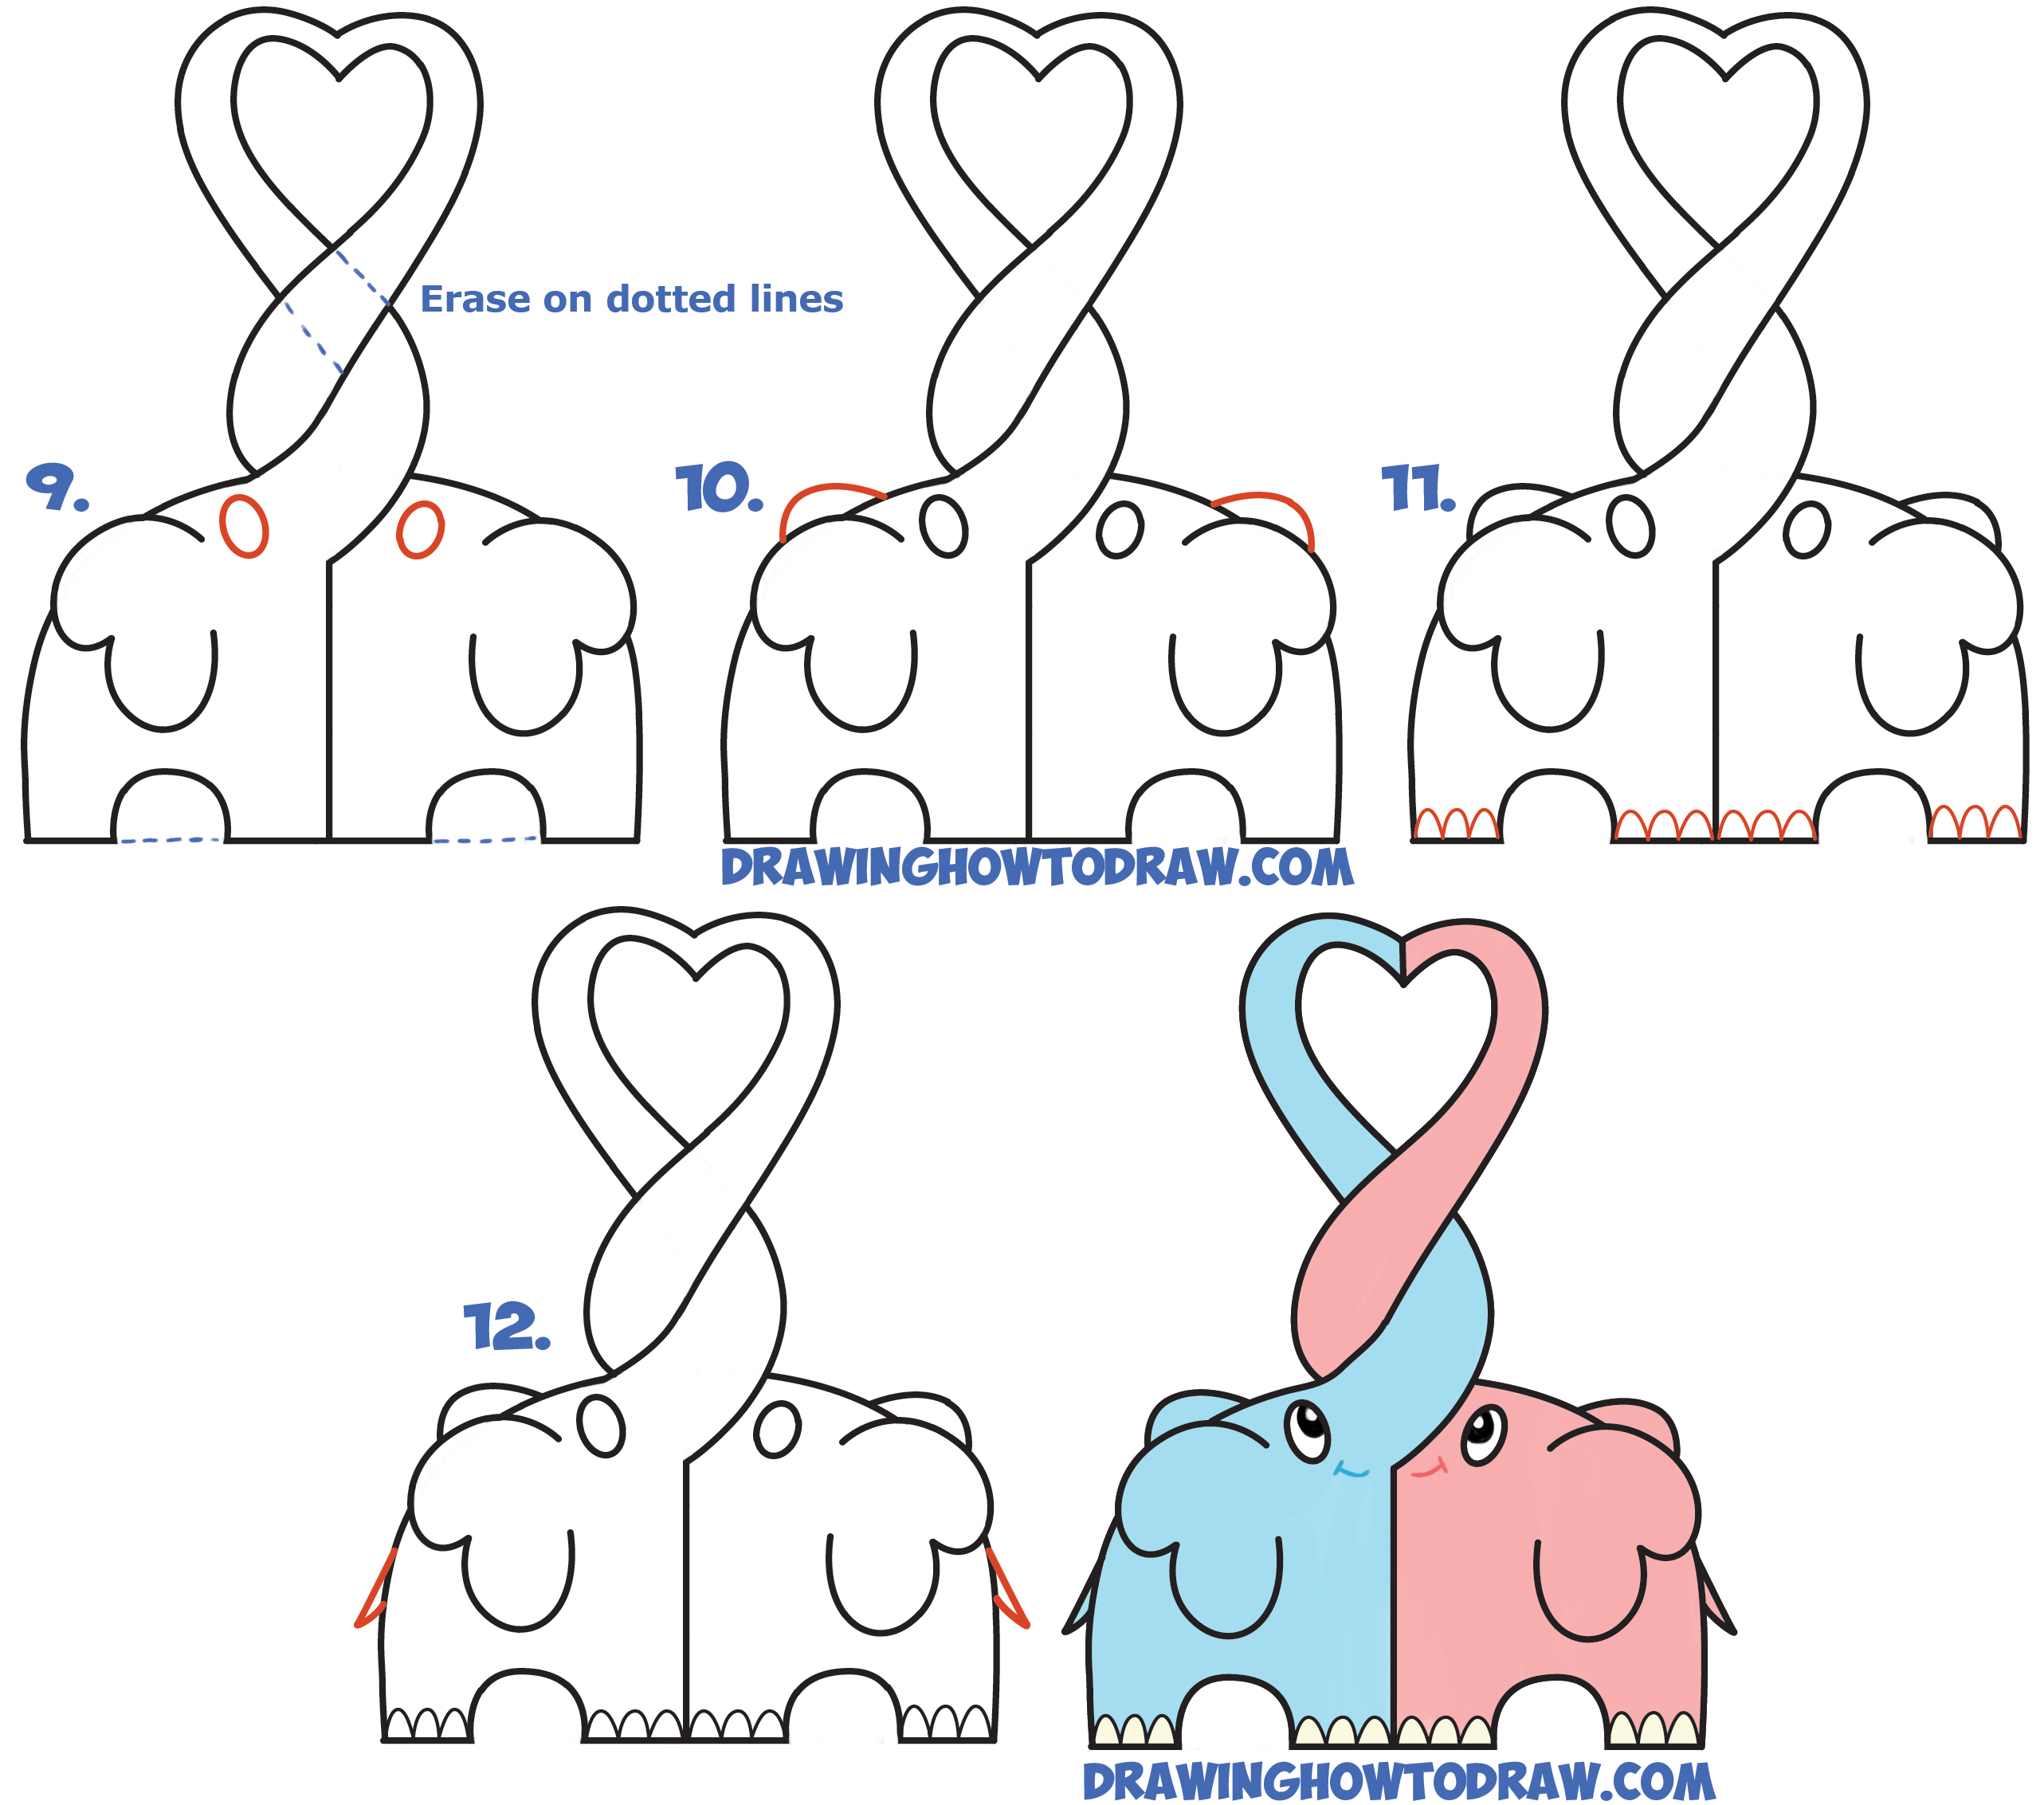 Learn How to Draw Cute Kawaii Chibi Elephants in Love Forming a Heart with Their Trunks - Easy Step by Step Drawing Lesson for Beginners